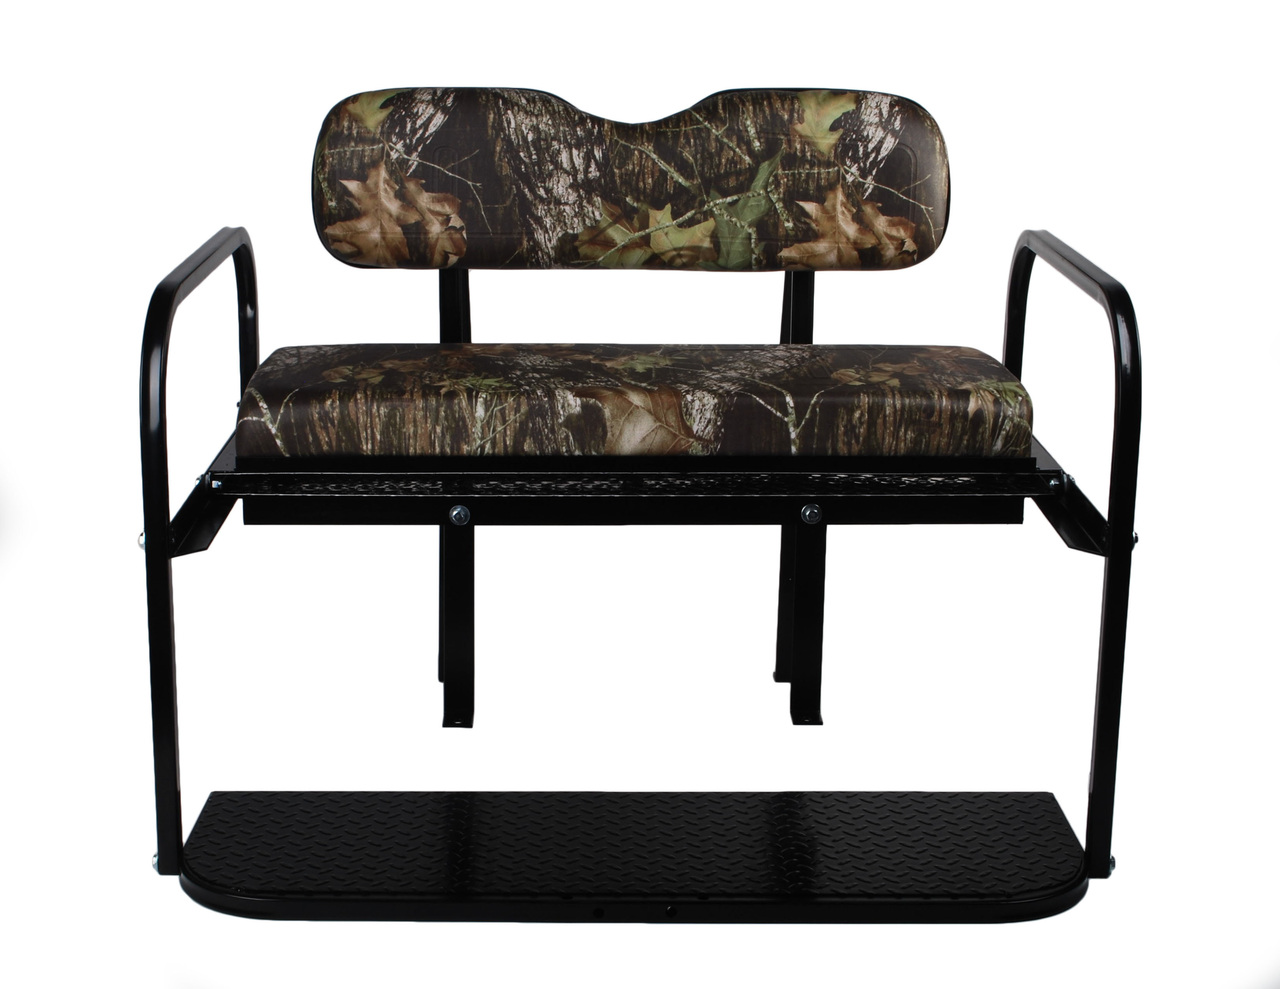 Golf Cart Seat Covers & Replacement Seats - Highest Quality